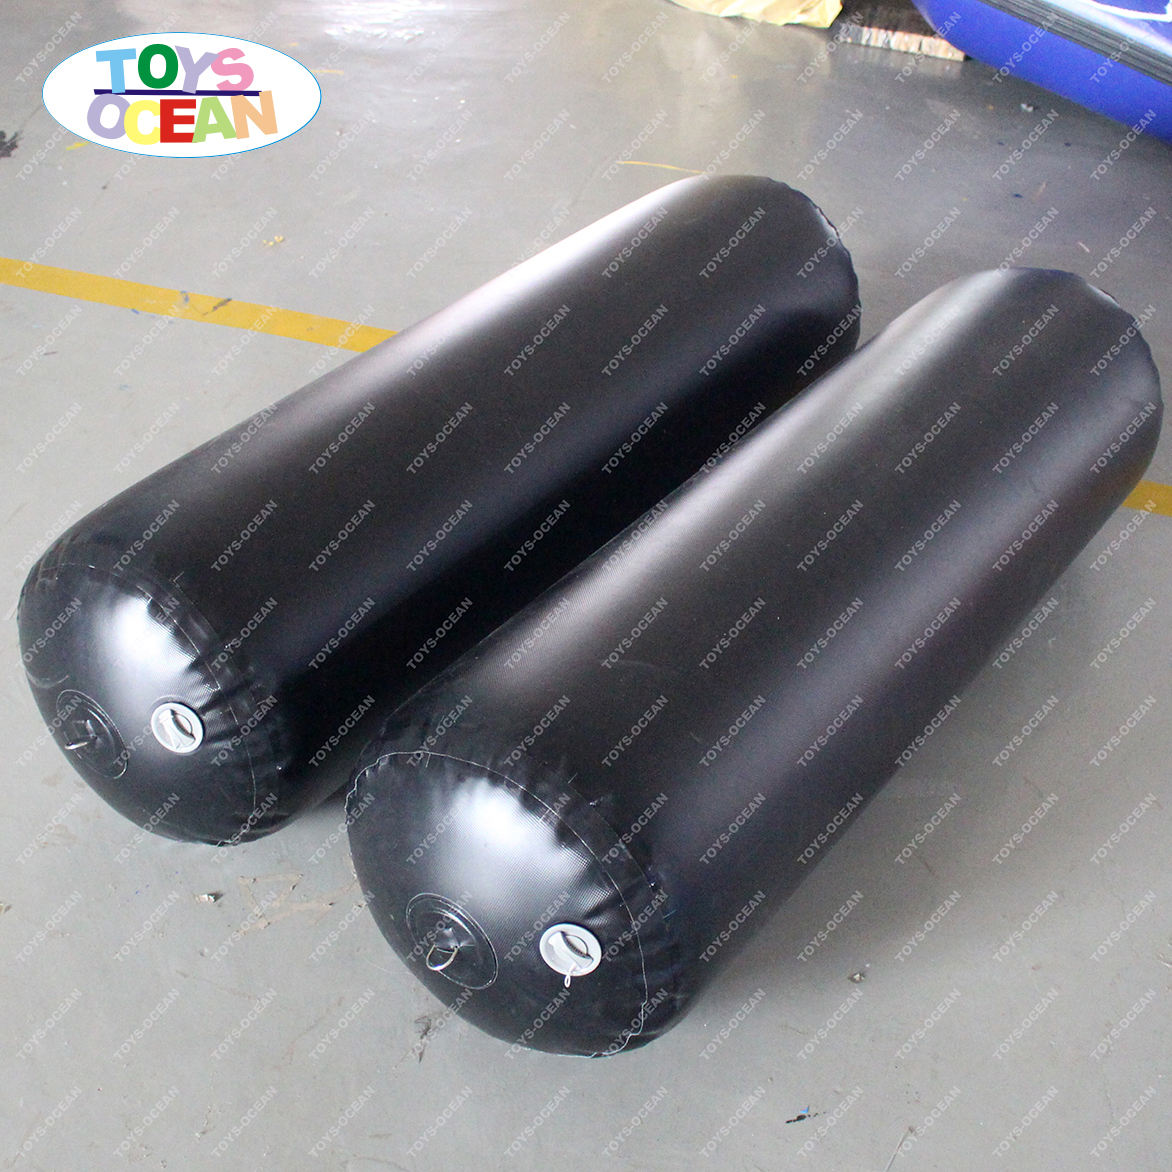 Venta caliente inflable yate guardabarros marinos defensas parachoques